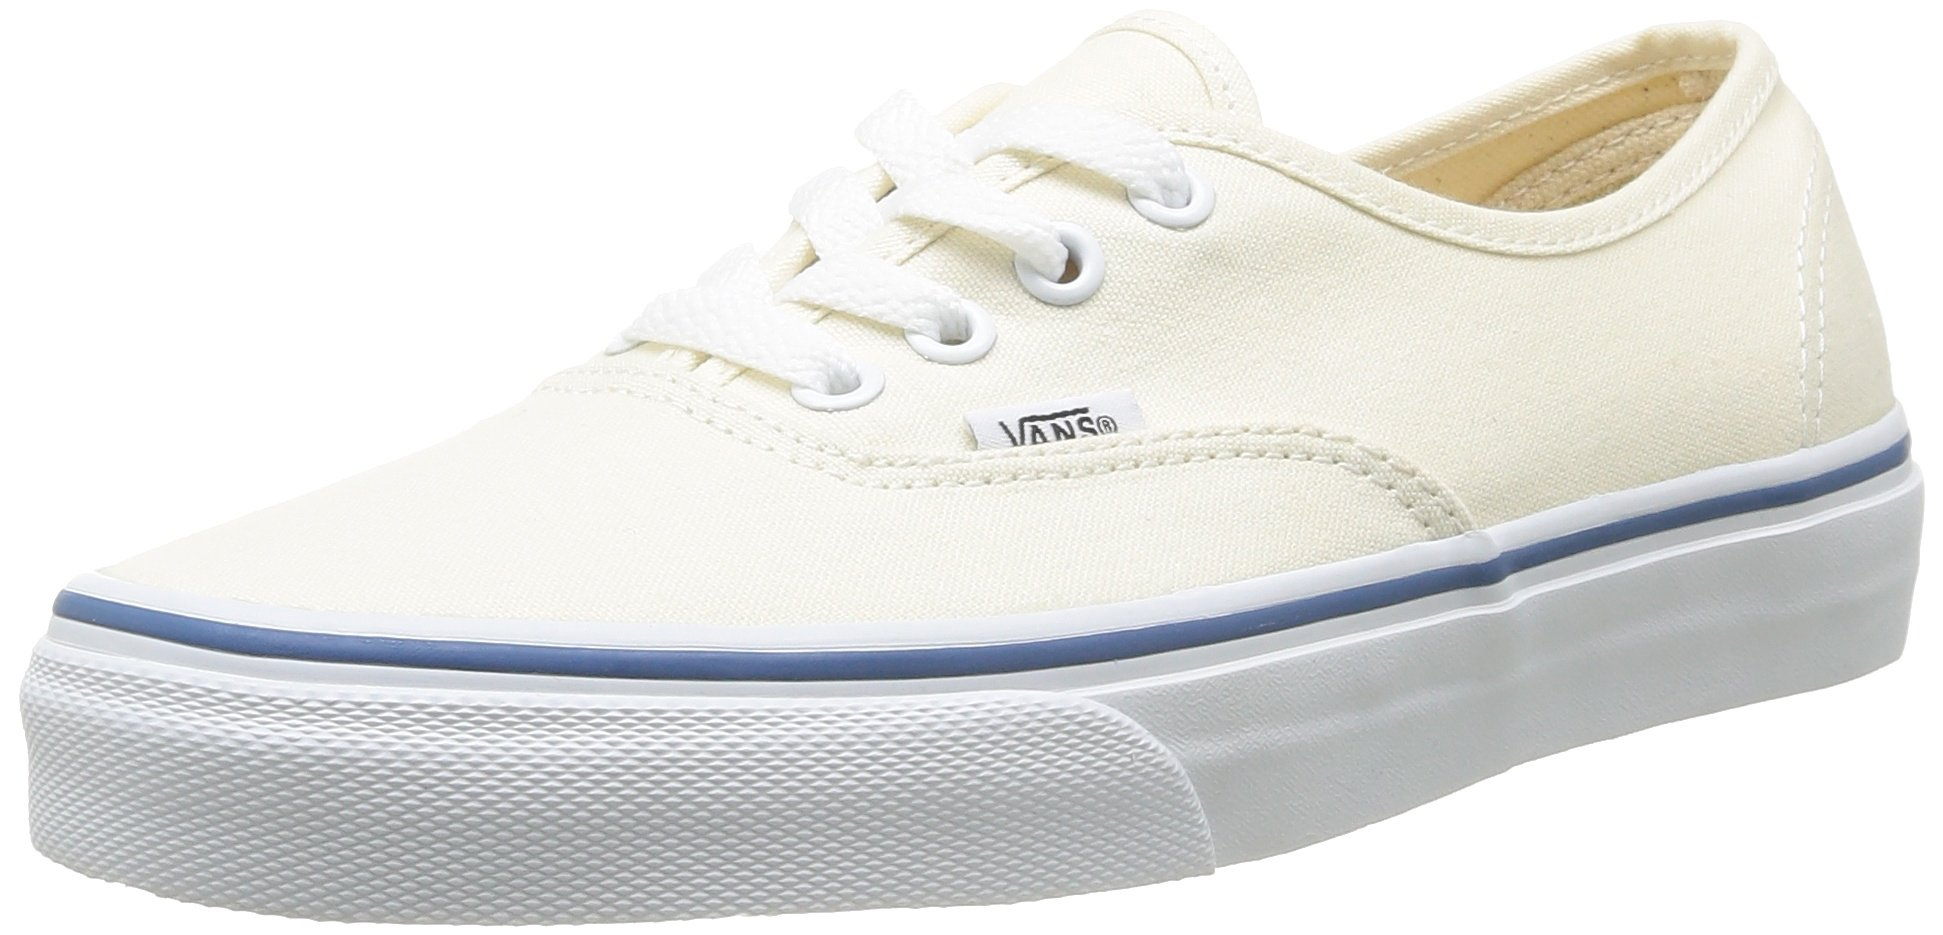 Vans Mixte AuthenticSneakers Uk Eu6 Basses Adulte Blancwhite39 dCWxBoQre